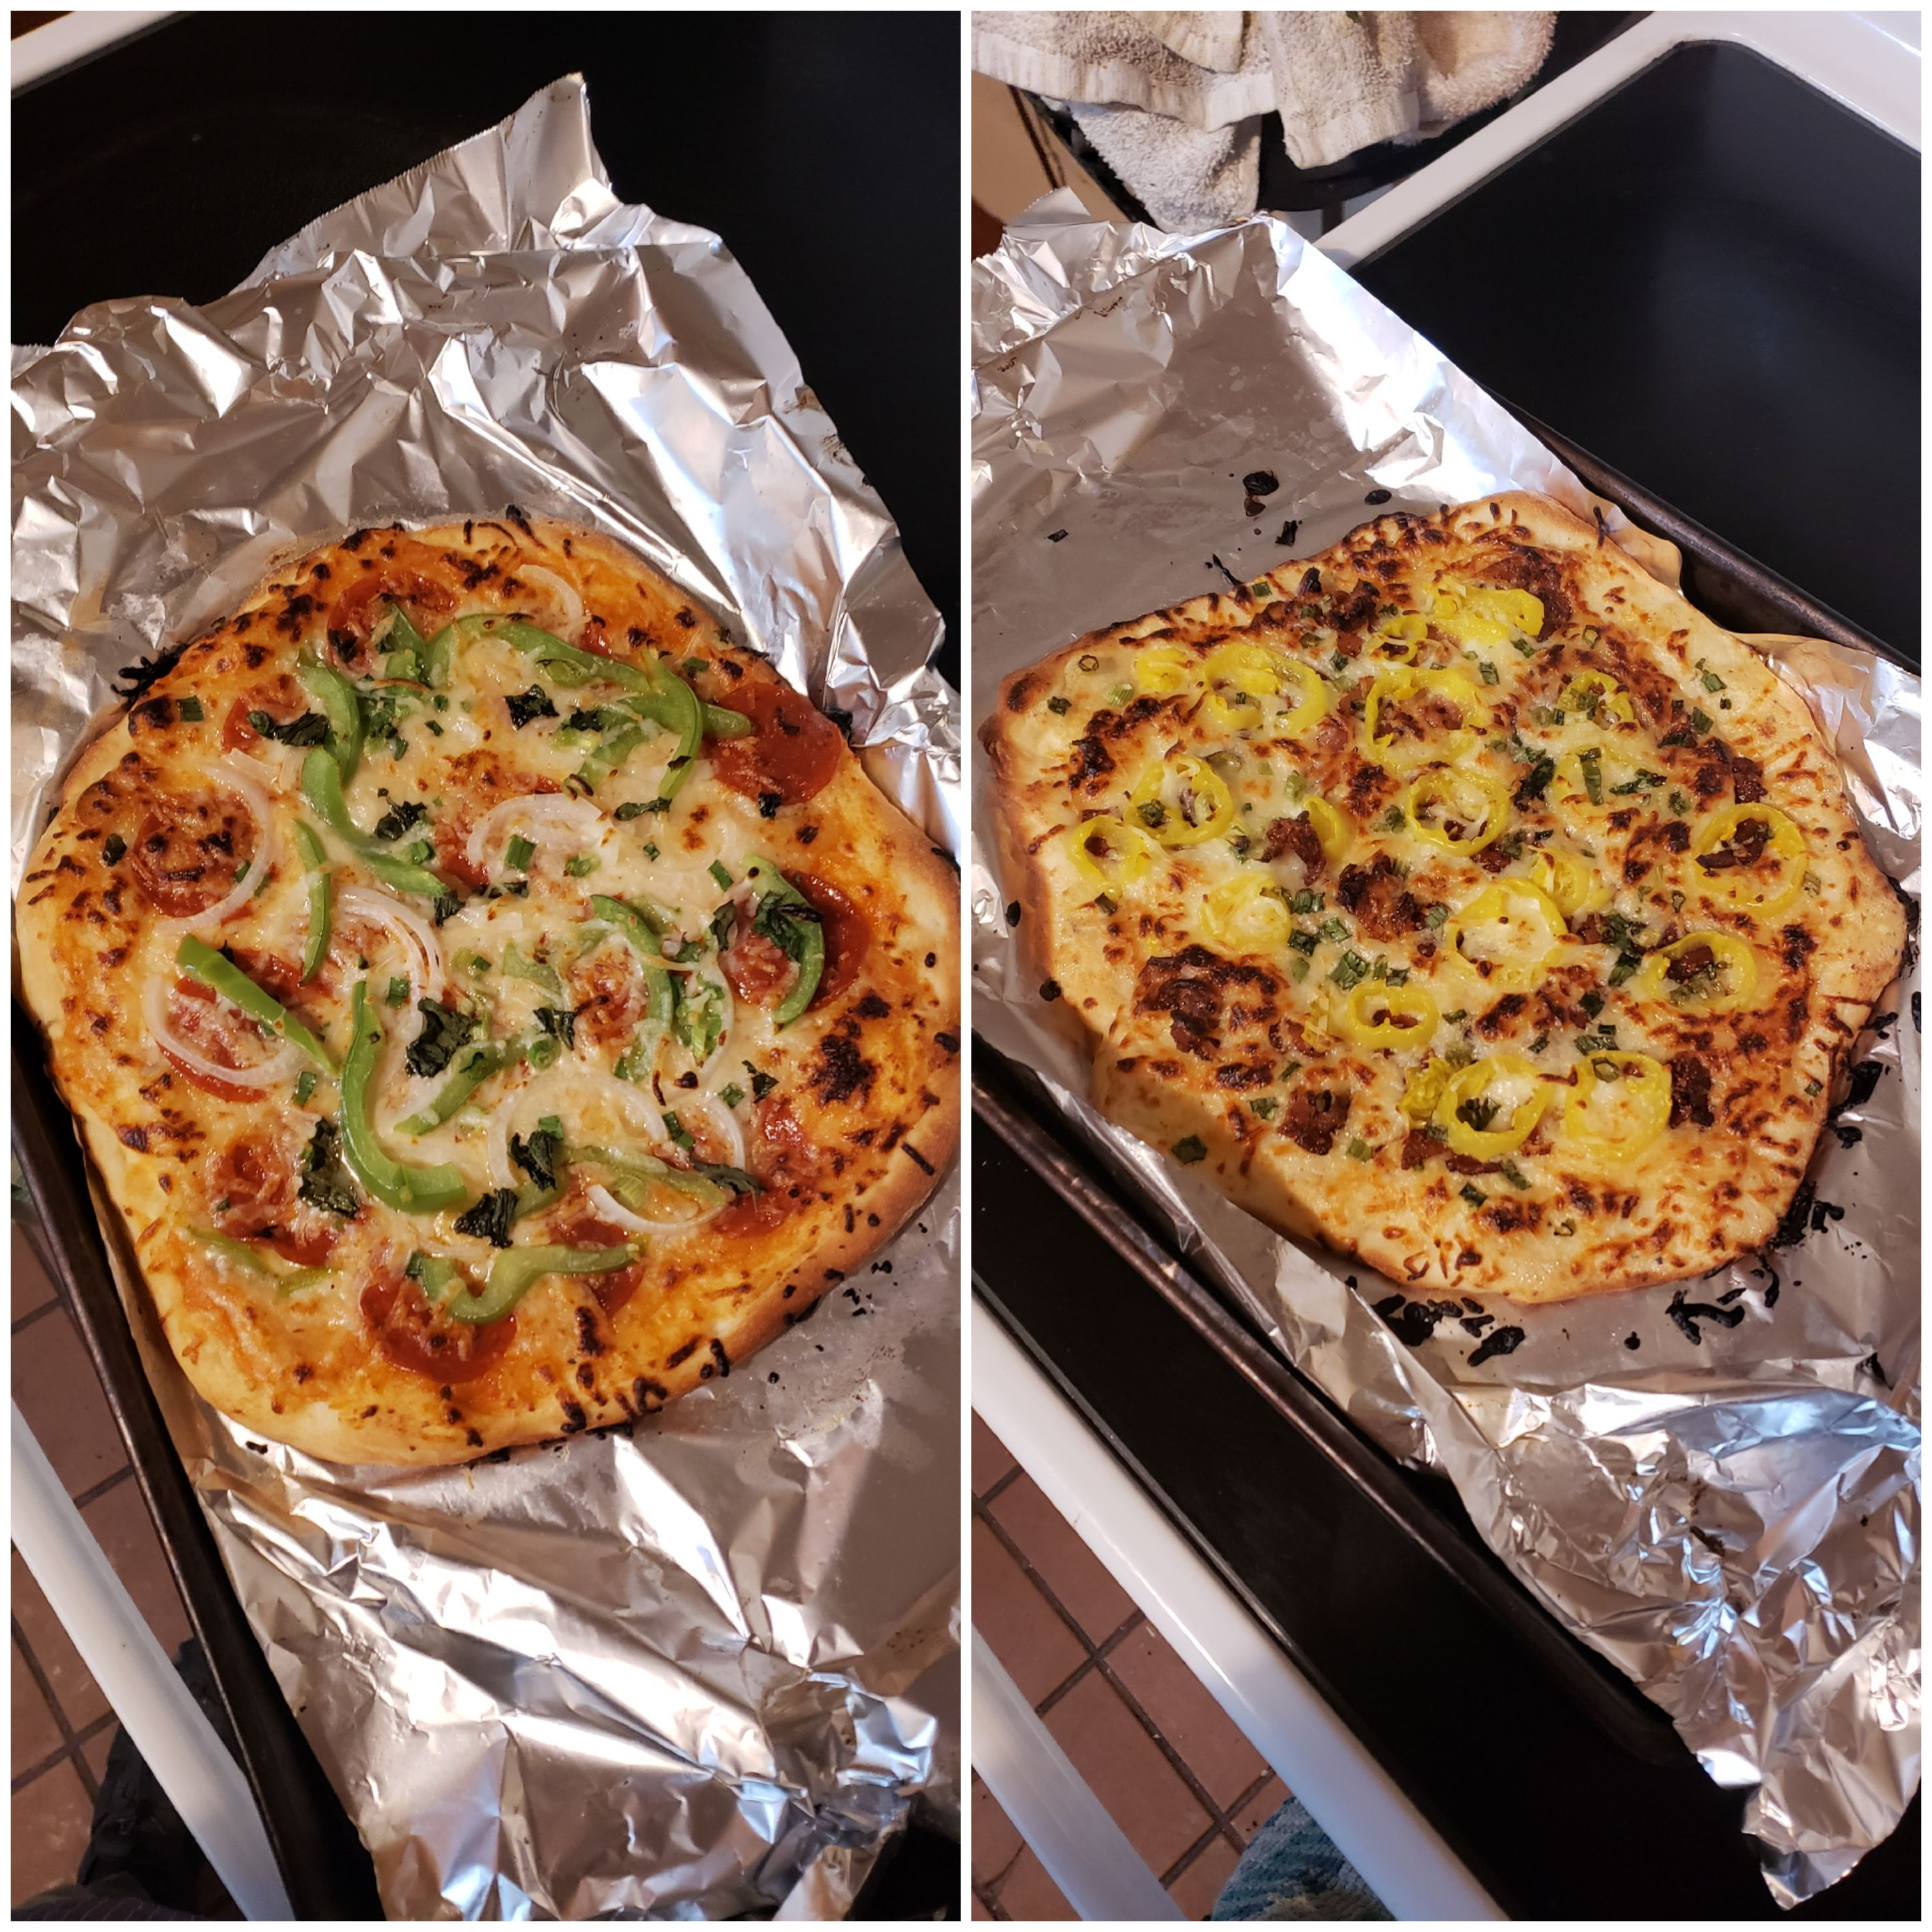 I'm trying to get back into pizza making after being five